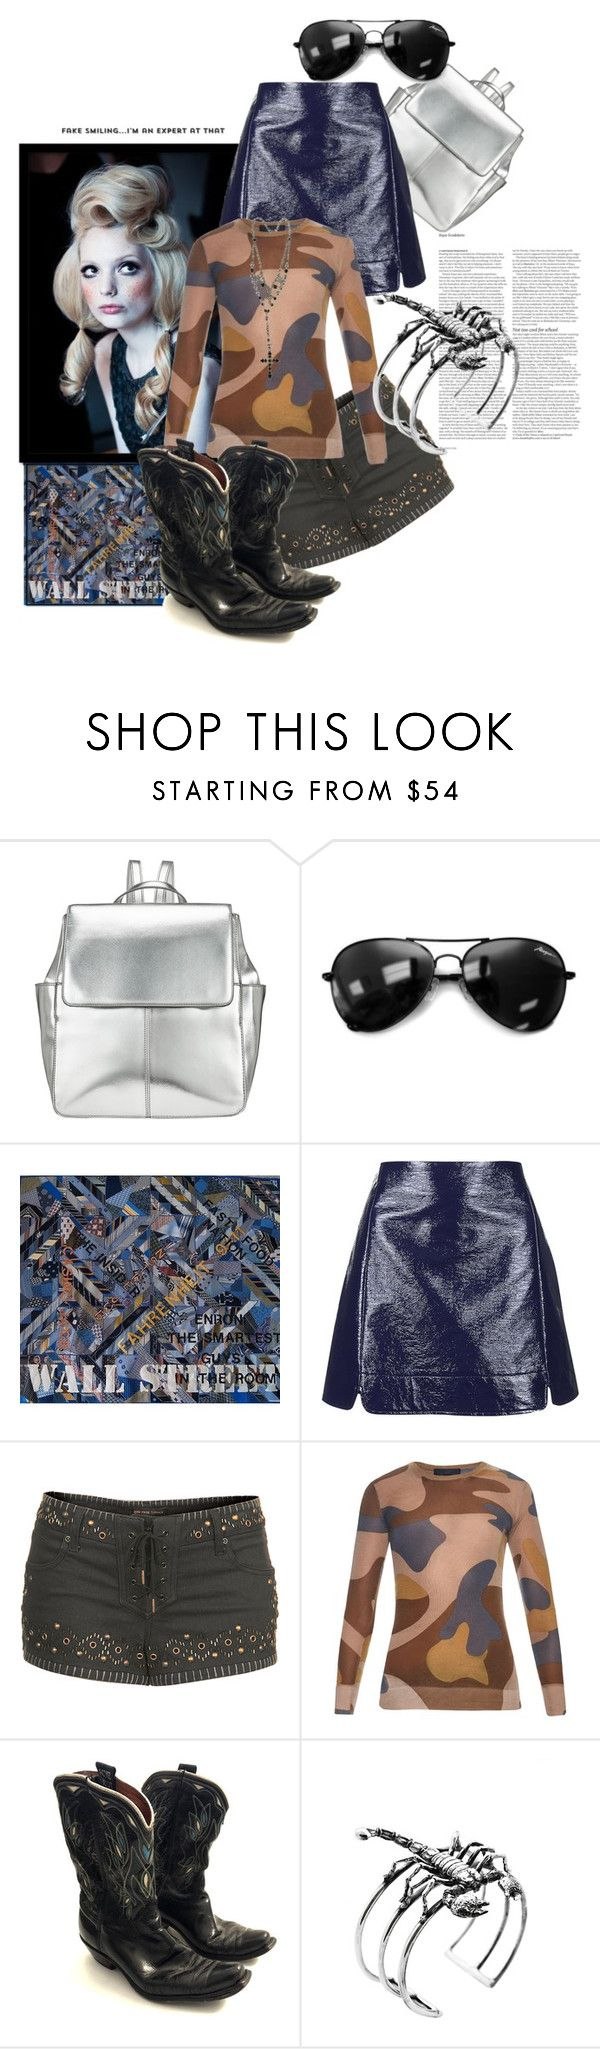 """""""Fake....Expert At That!"""" by the-house-of-kasin ❤ liked on Polyvore featuring Kin by John Lewis, Topshop, Burberry, ASOS, Glenda López, Forever 21, women's clothing, women's fashion, women and female"""